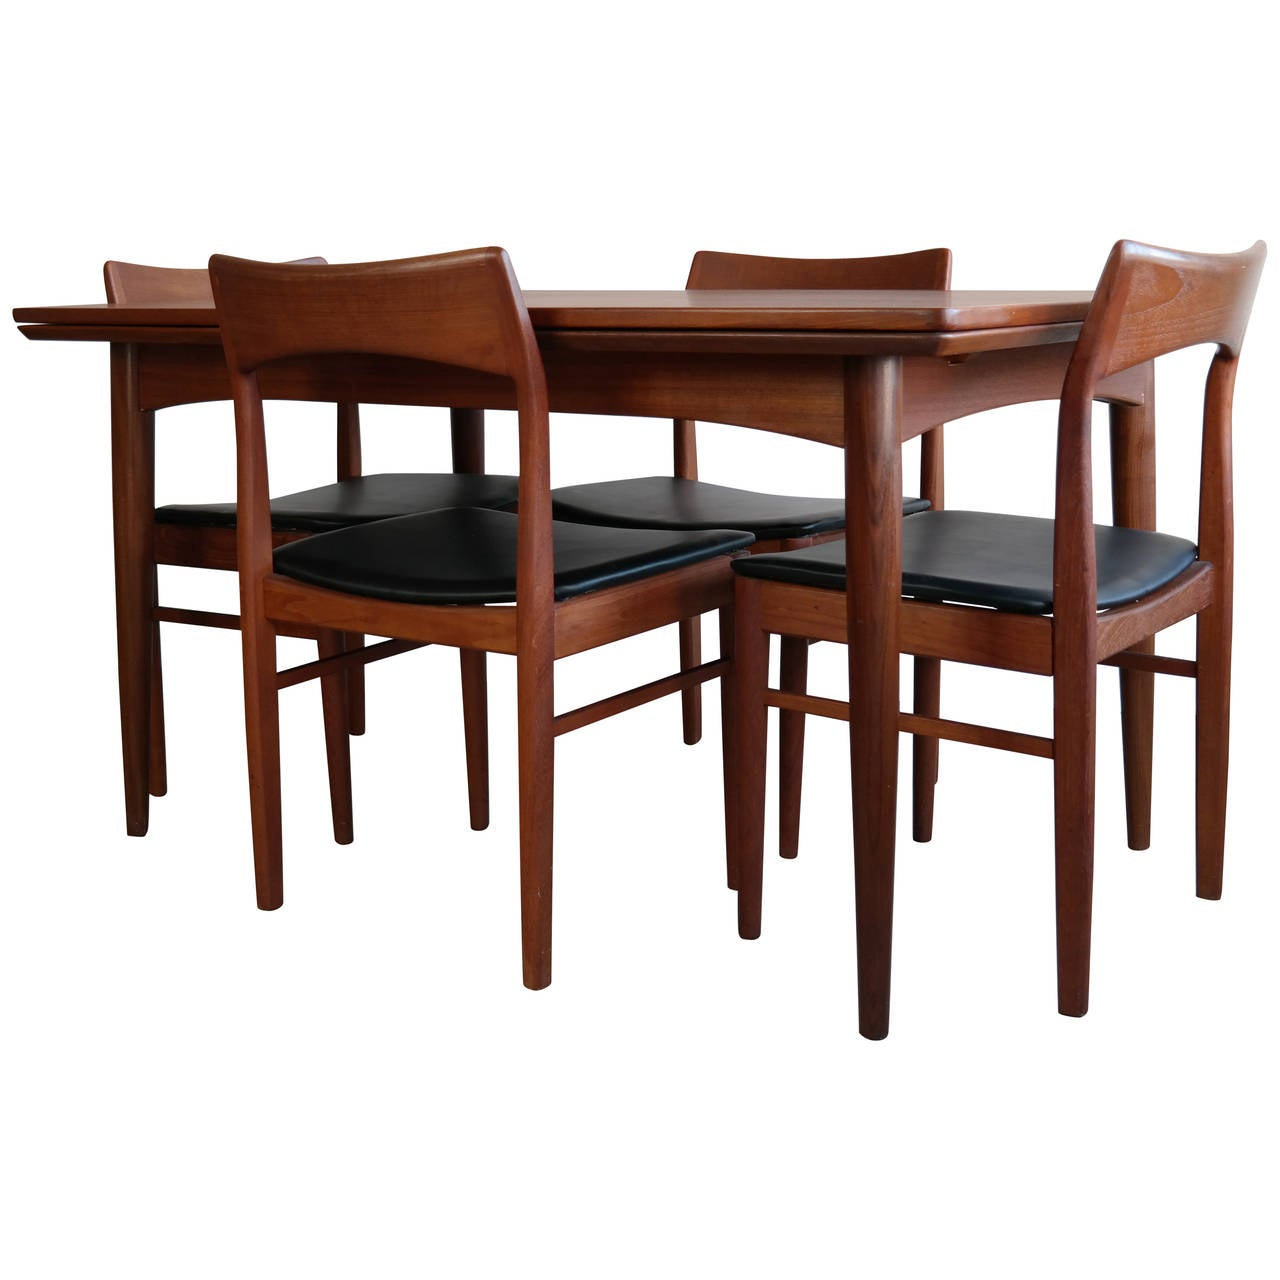 Danish modern dining set in teak at 1stdibs for Breakfast sets furniture